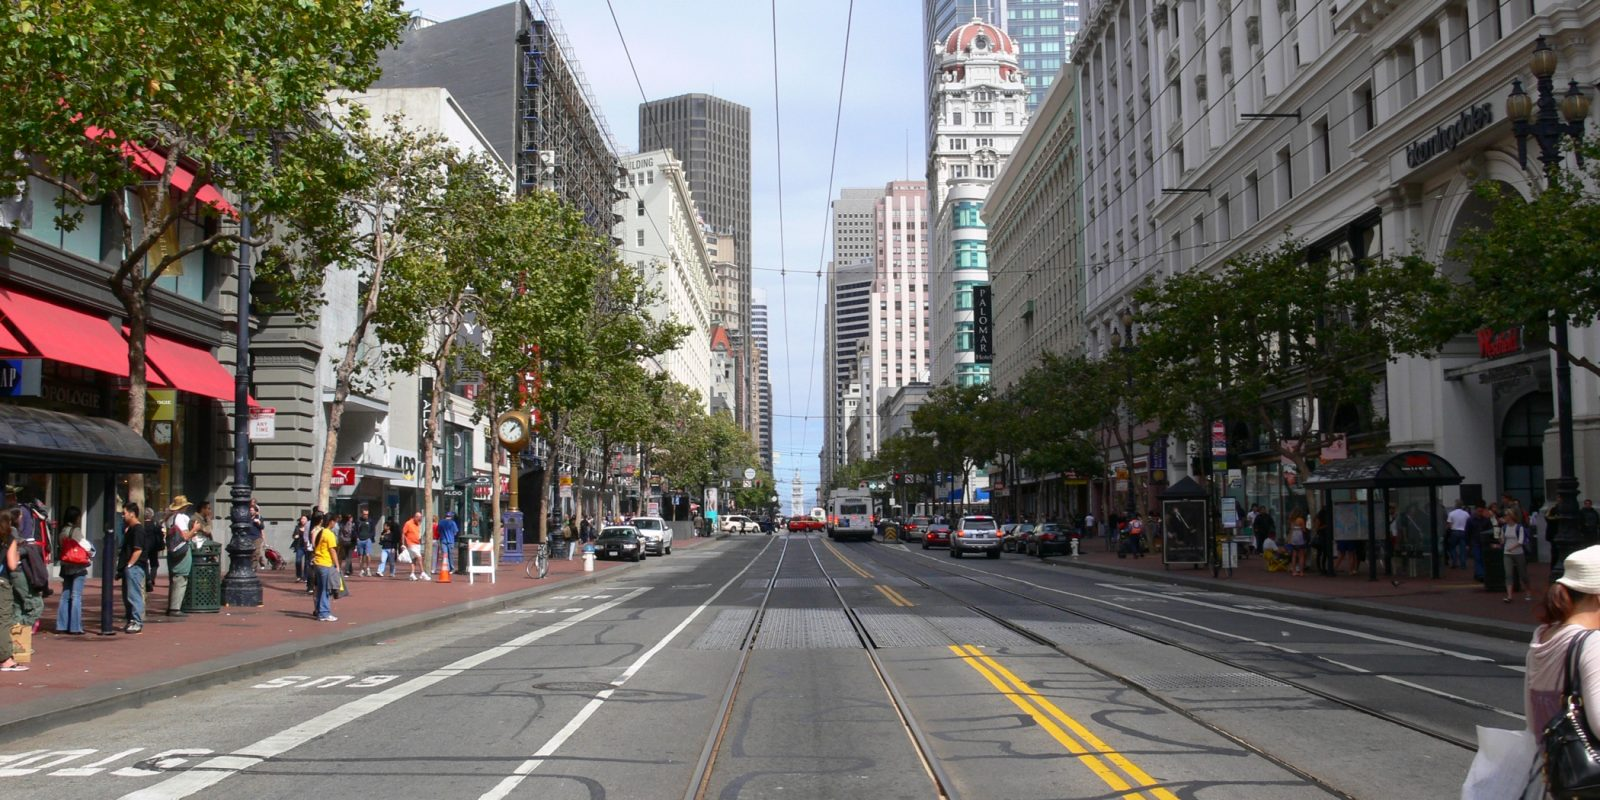 Cars banned on San Francisco's Market Street in favor of alt-transportation